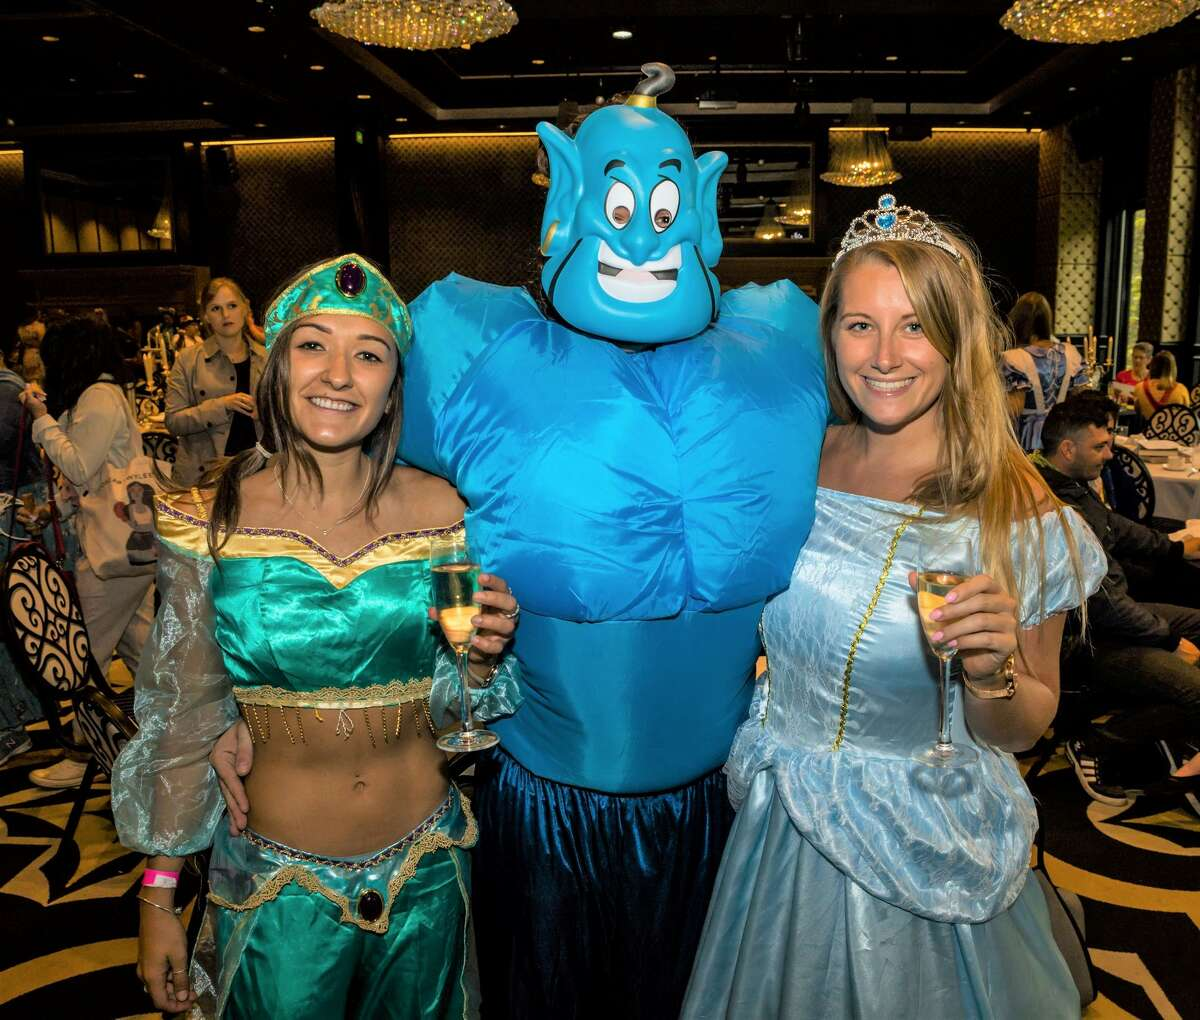 PHOTOS: A Disney inspired boozy sing-along brunch is coming to Houston. >>> Get an inside look of the event ...